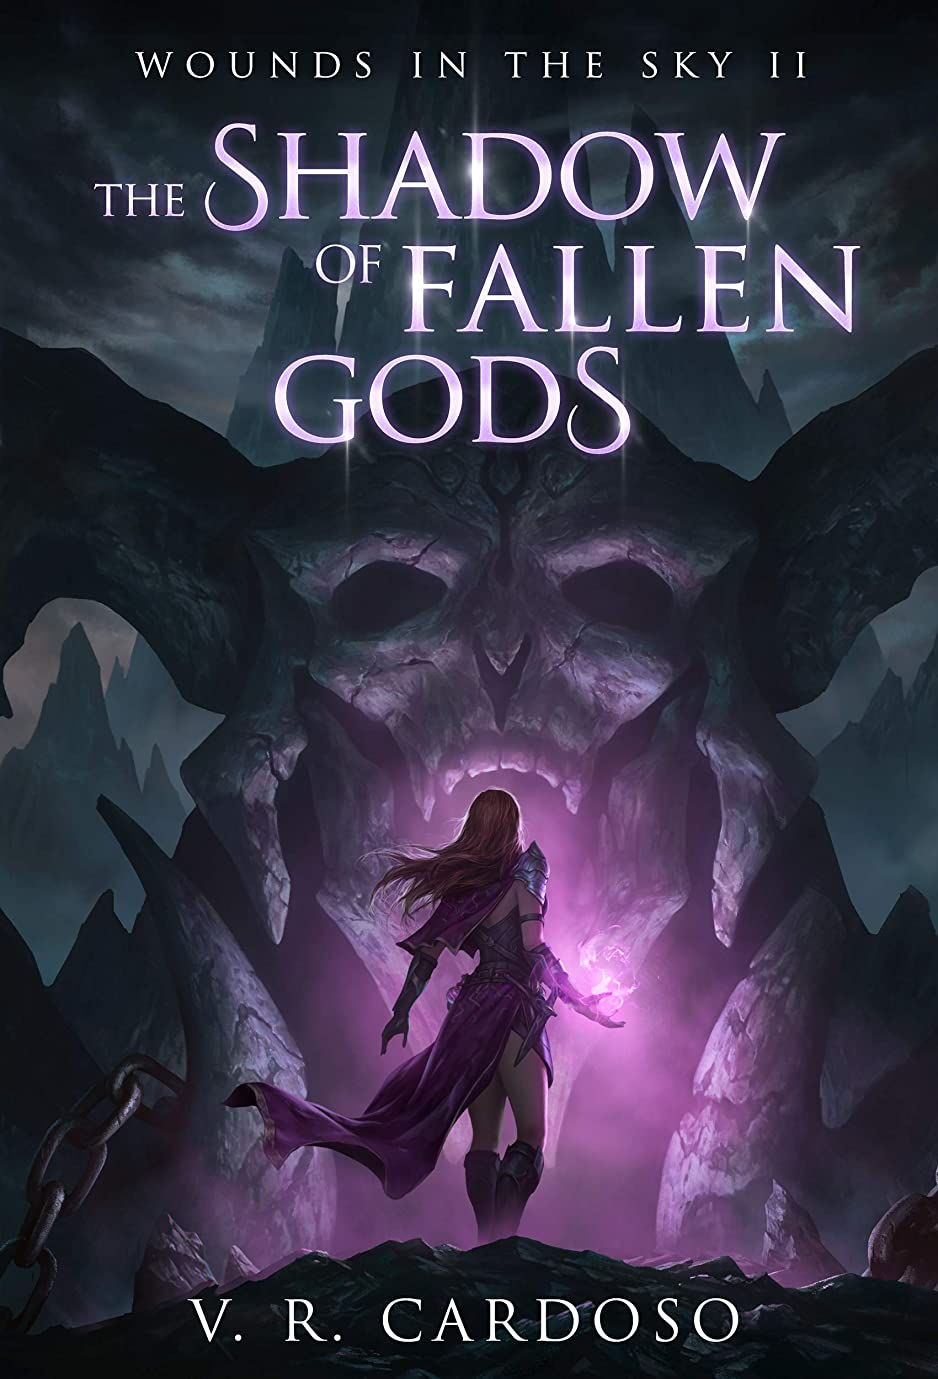 値邪悪なバケットThe Shadow Of Fallen Gods (Wounds in the Sky Book 2) (English Edition)